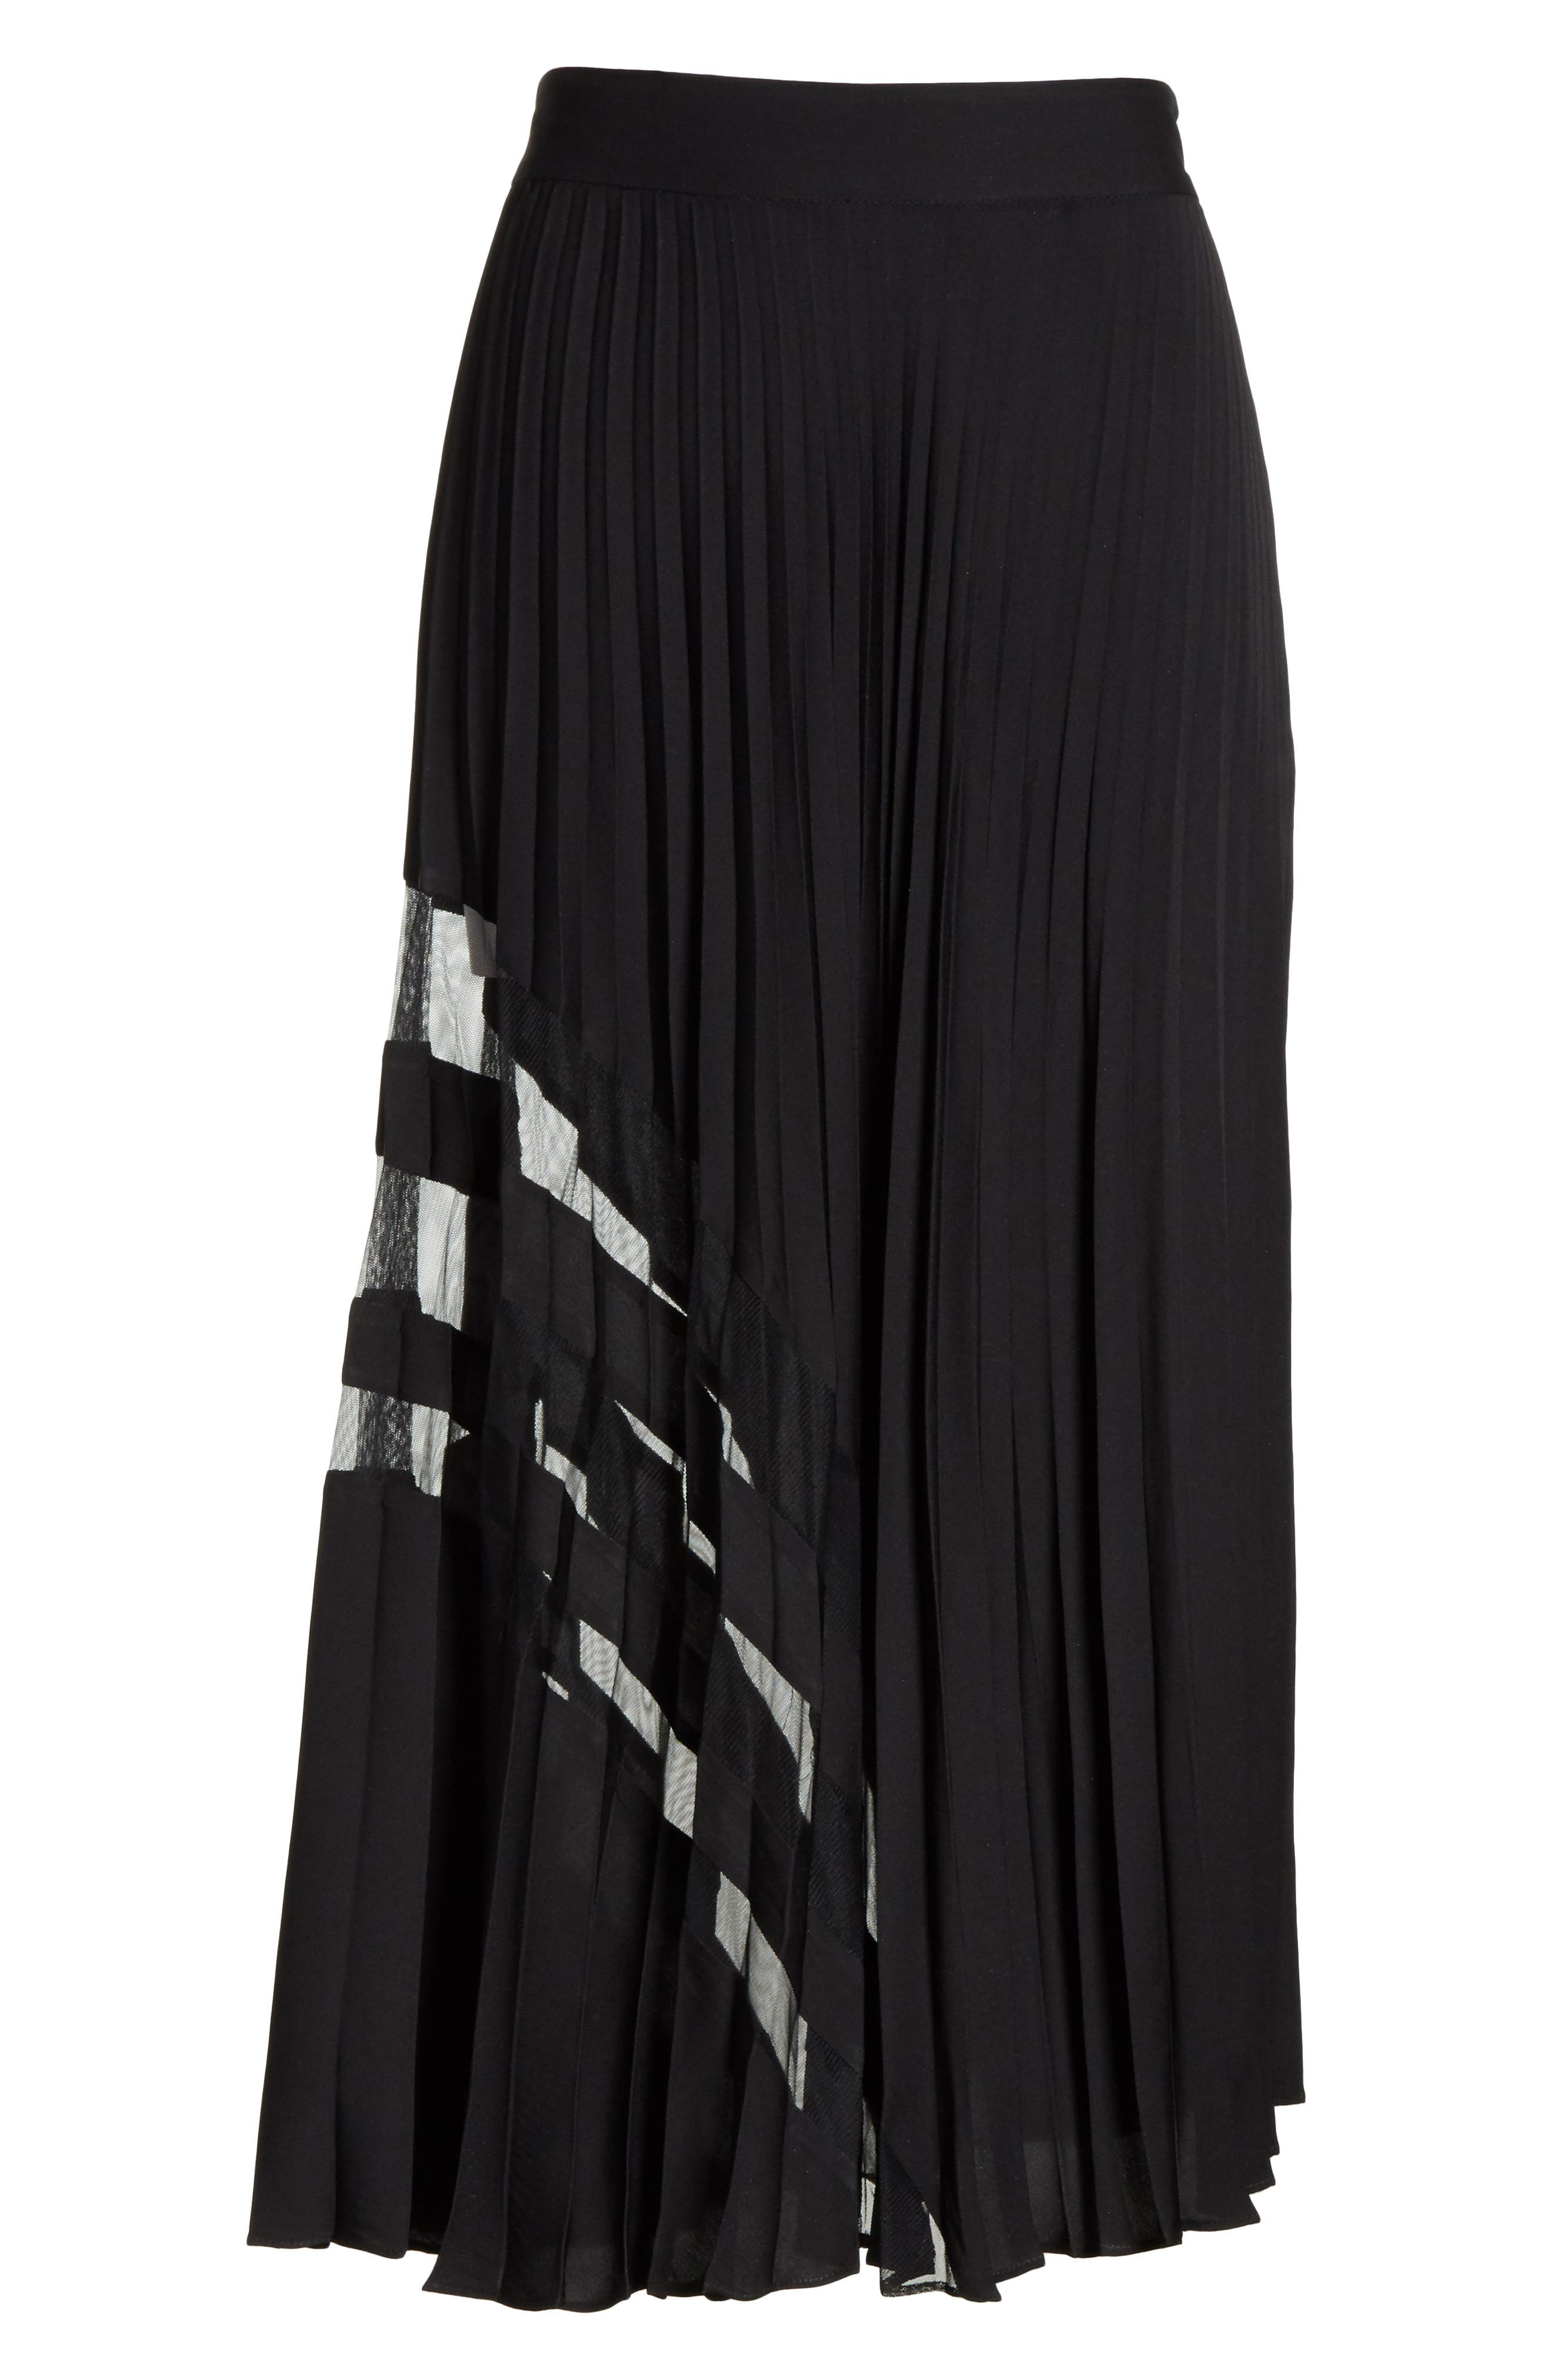 MILLY, Pleated Maxi Skirt, Alternate thumbnail 6, color, 007